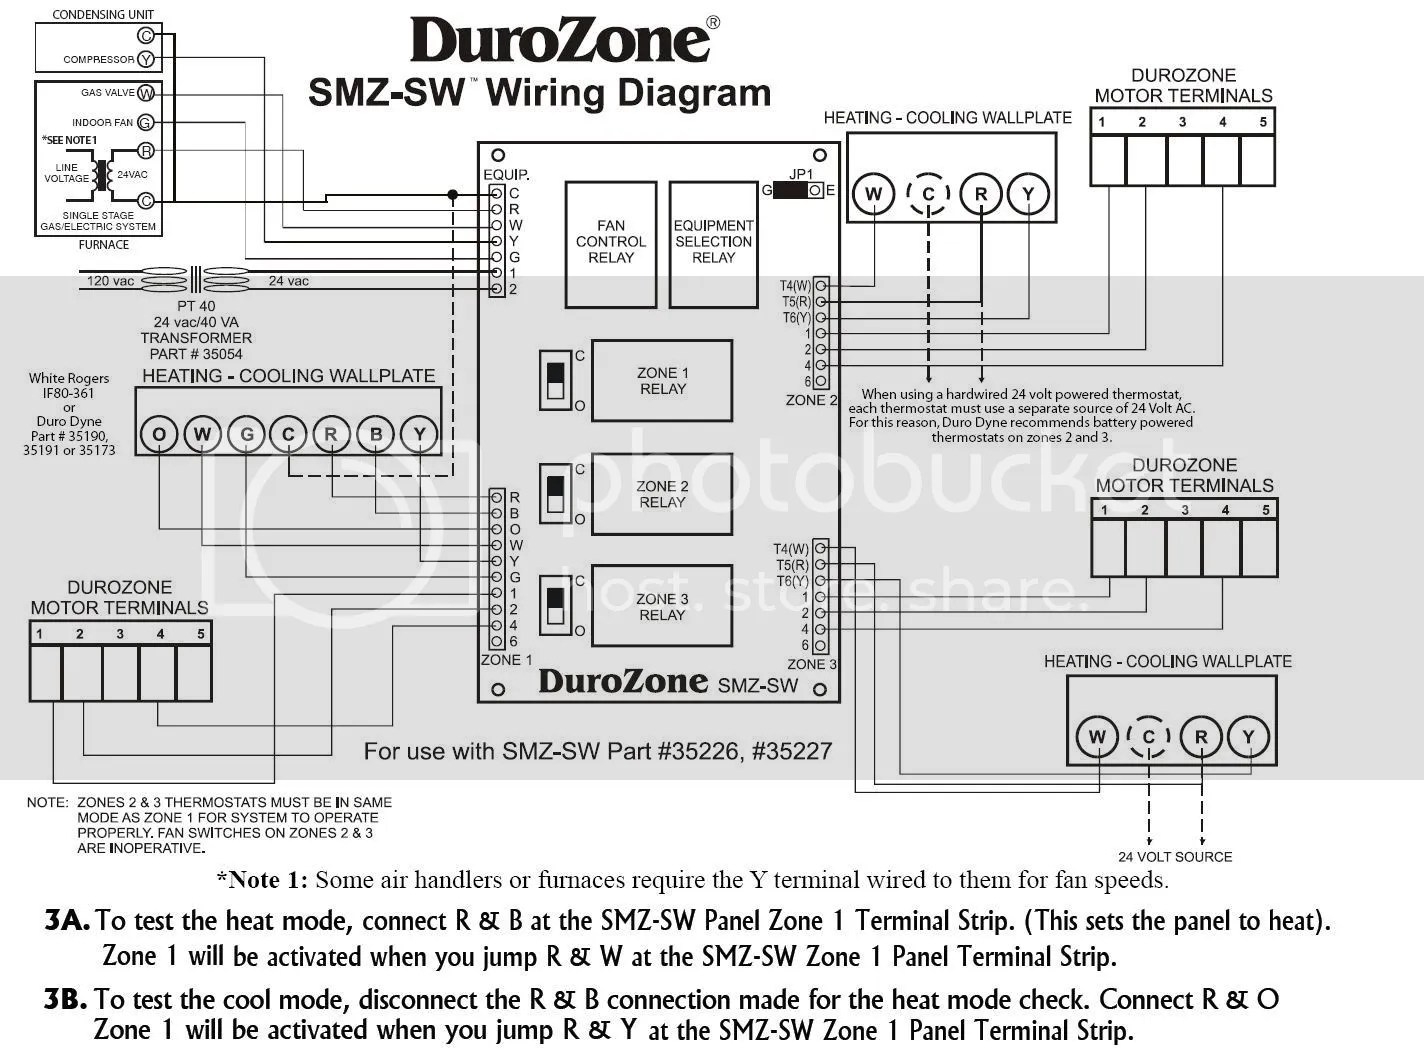 24 volt thermostat wiring diagram 1964 impala honeywell durozone - programable replacement options doityourself.com community forums